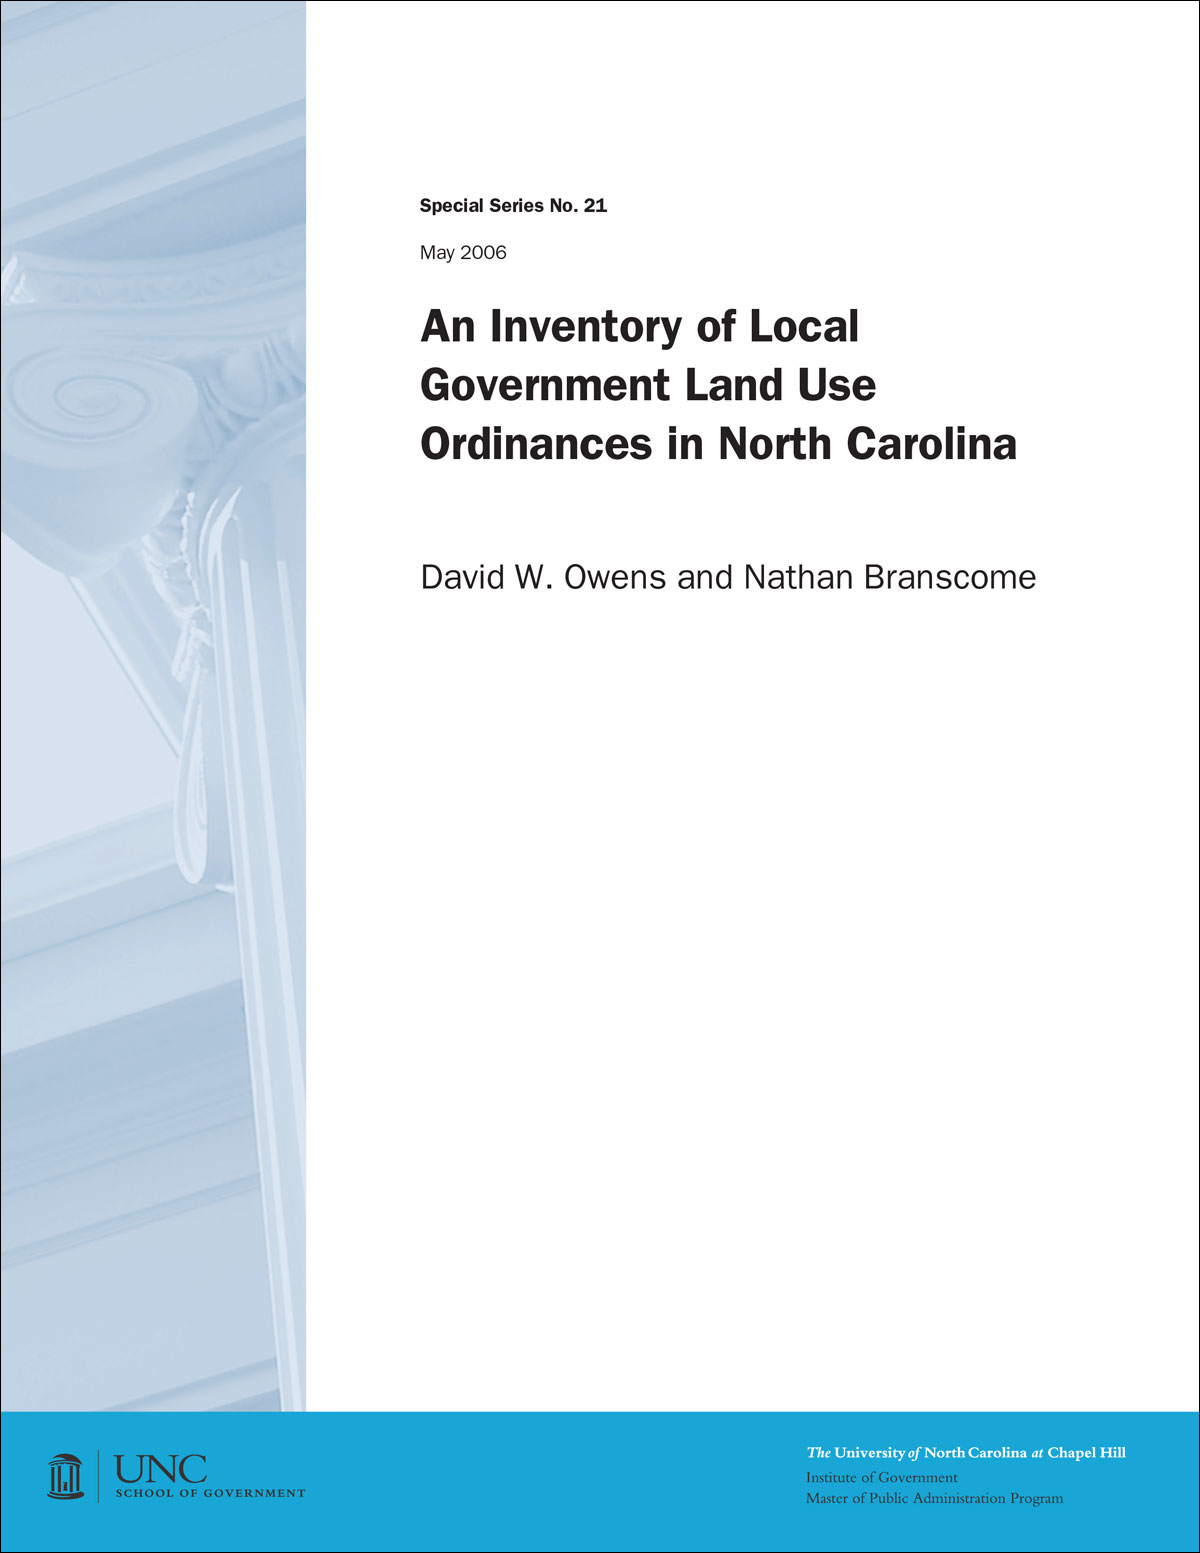 Cover image for An Inventory of Local Government Land Use Ordinances in North Carolina